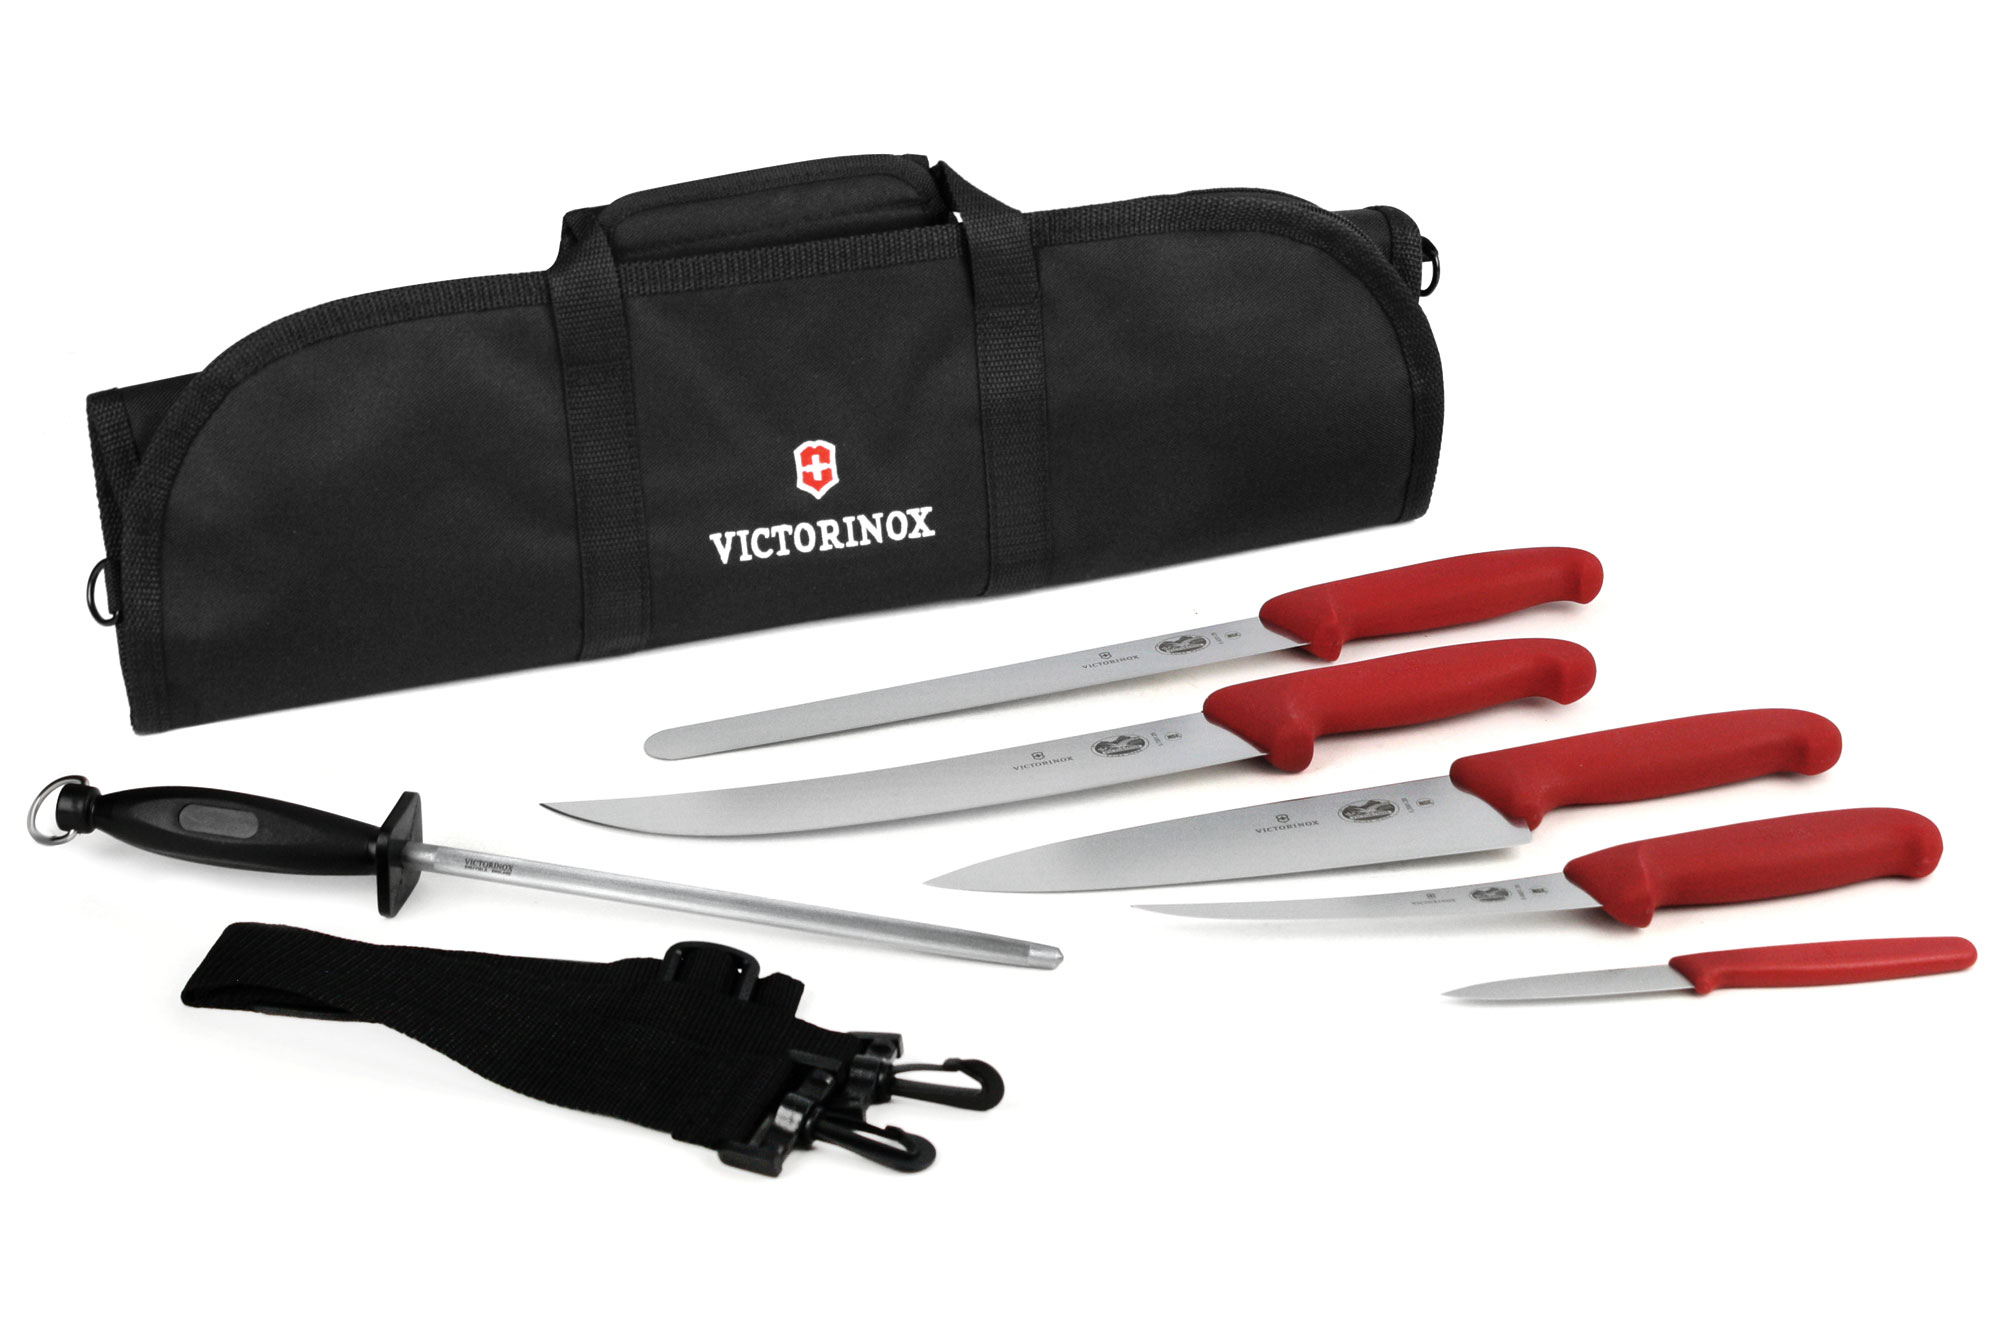 Victorinox Fibrox Bbq Knife Roll Set 7 Piece Cutlery